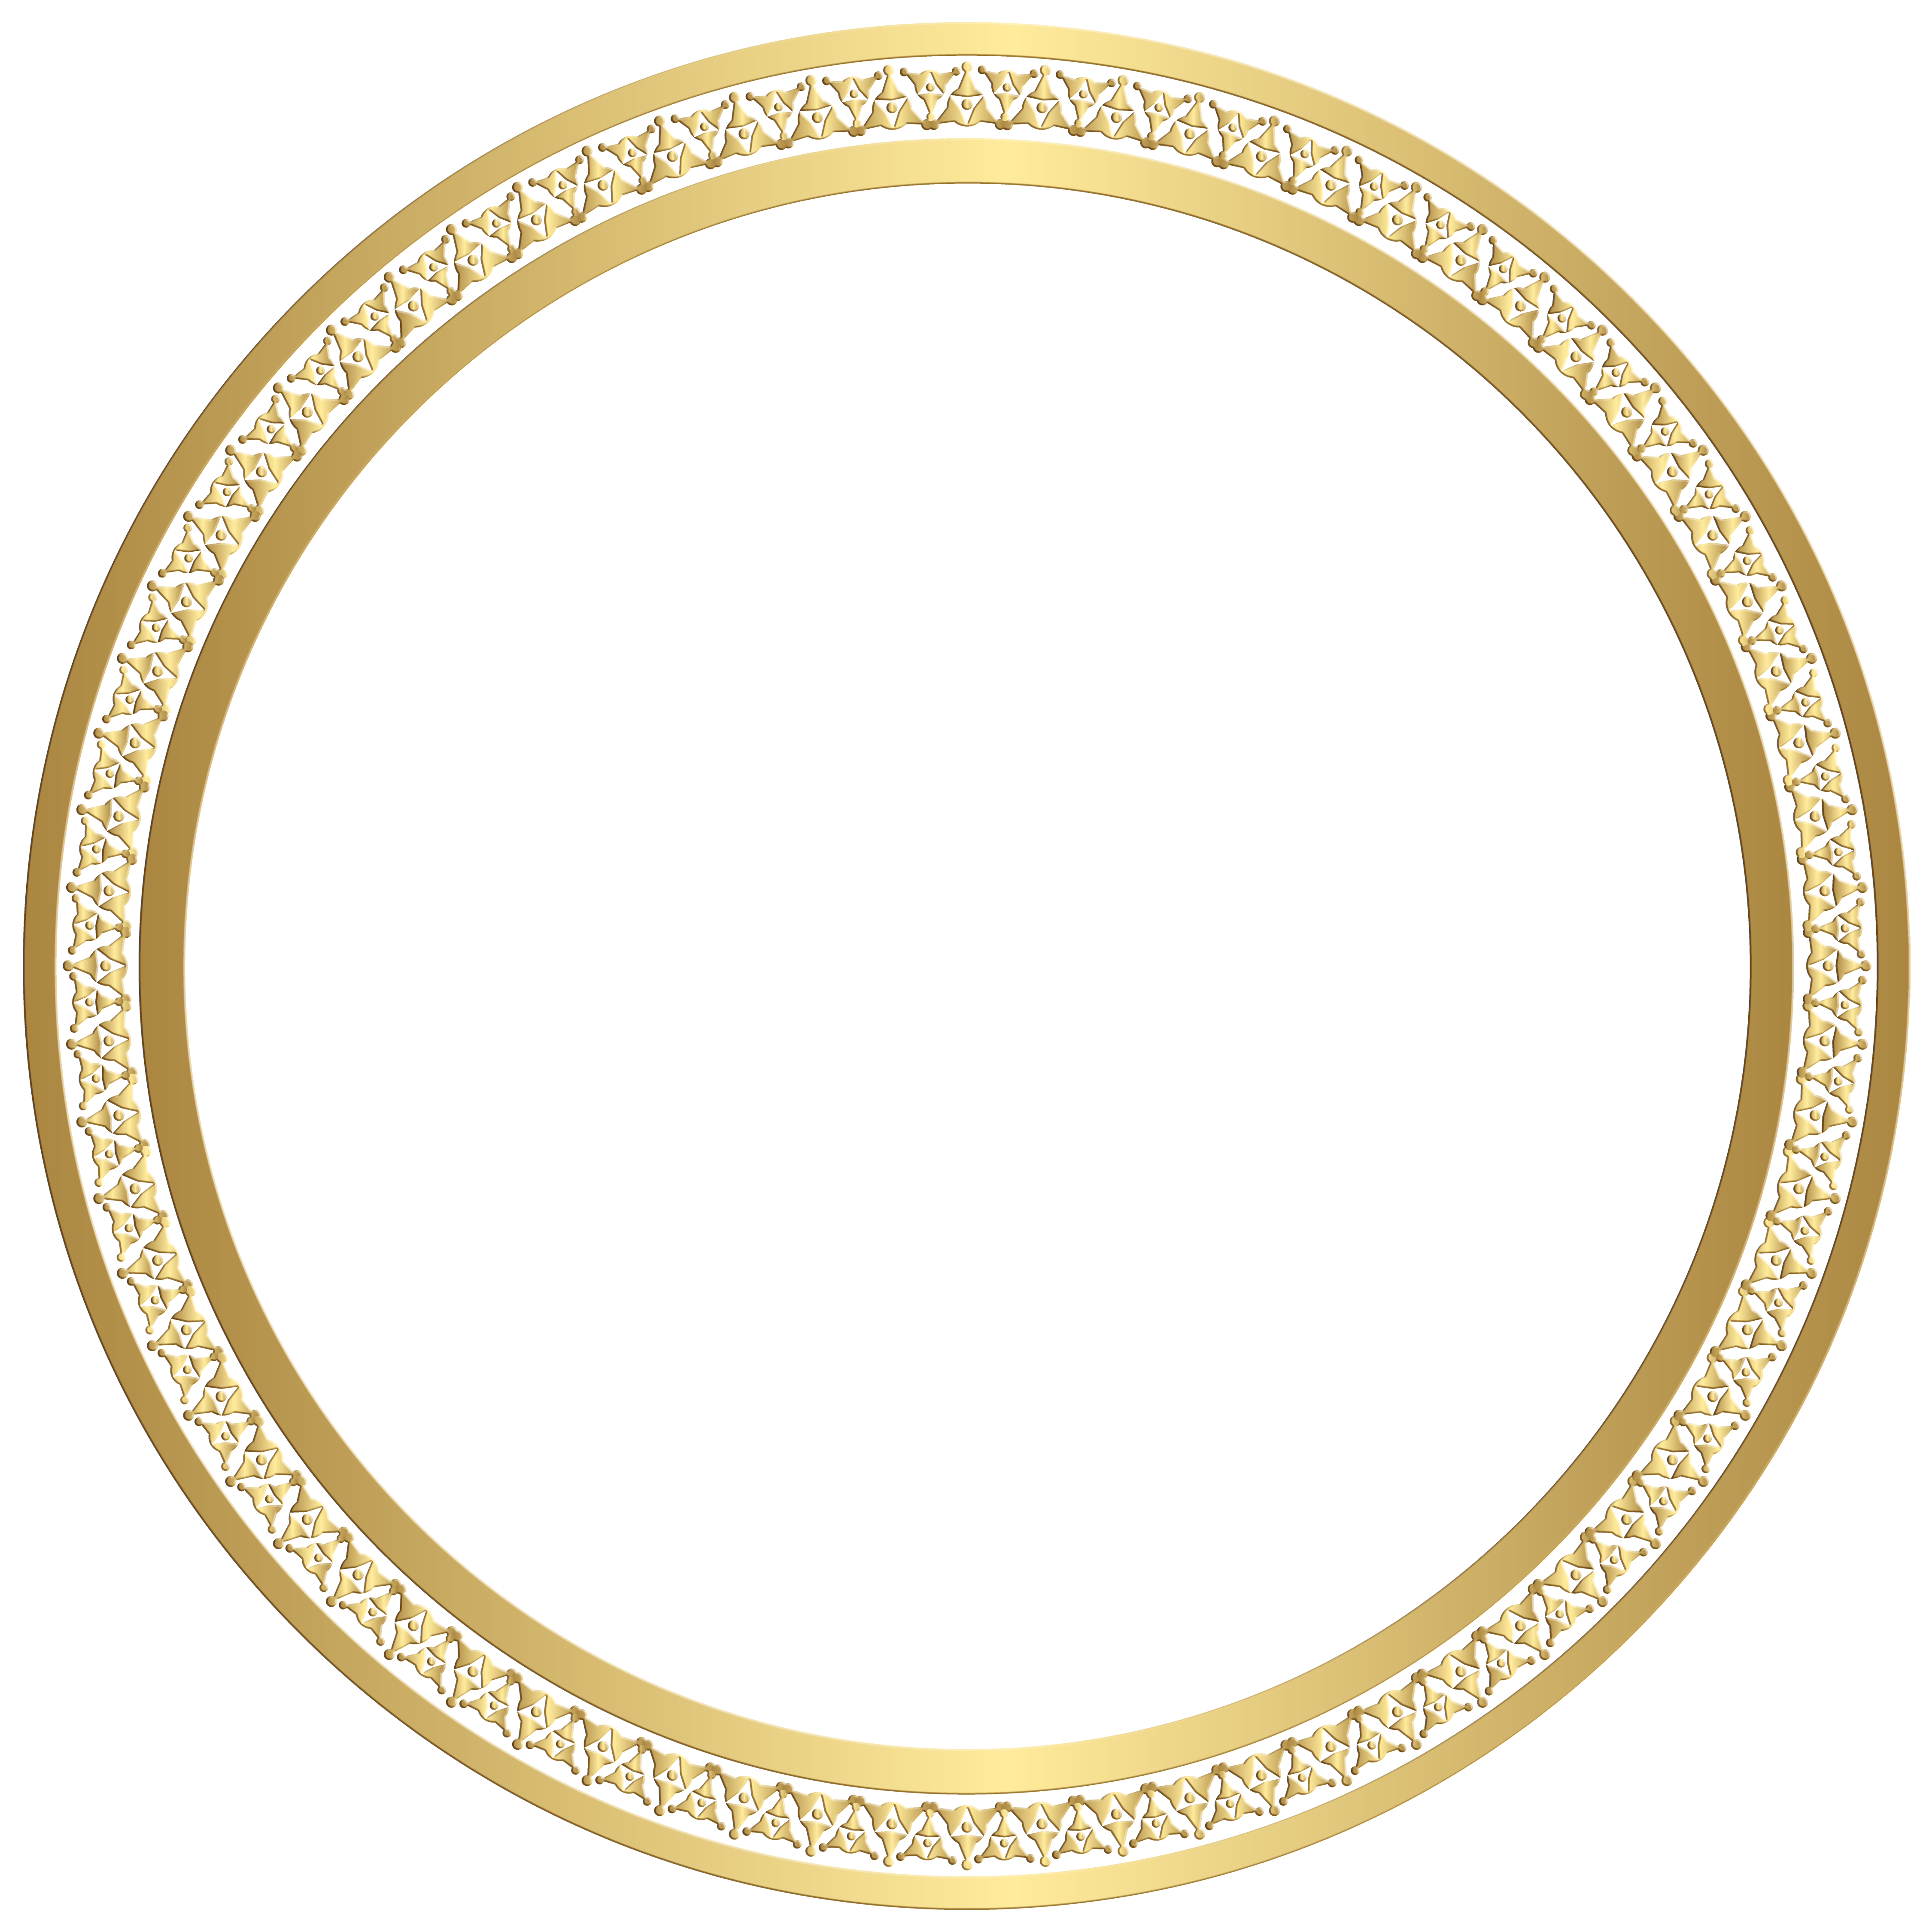 Round Border Frame Gold Clip Art Image Gallery Yopriceville High Quality Images And Transparent Png Free Clipart Gold Clipart Art Images Round Border